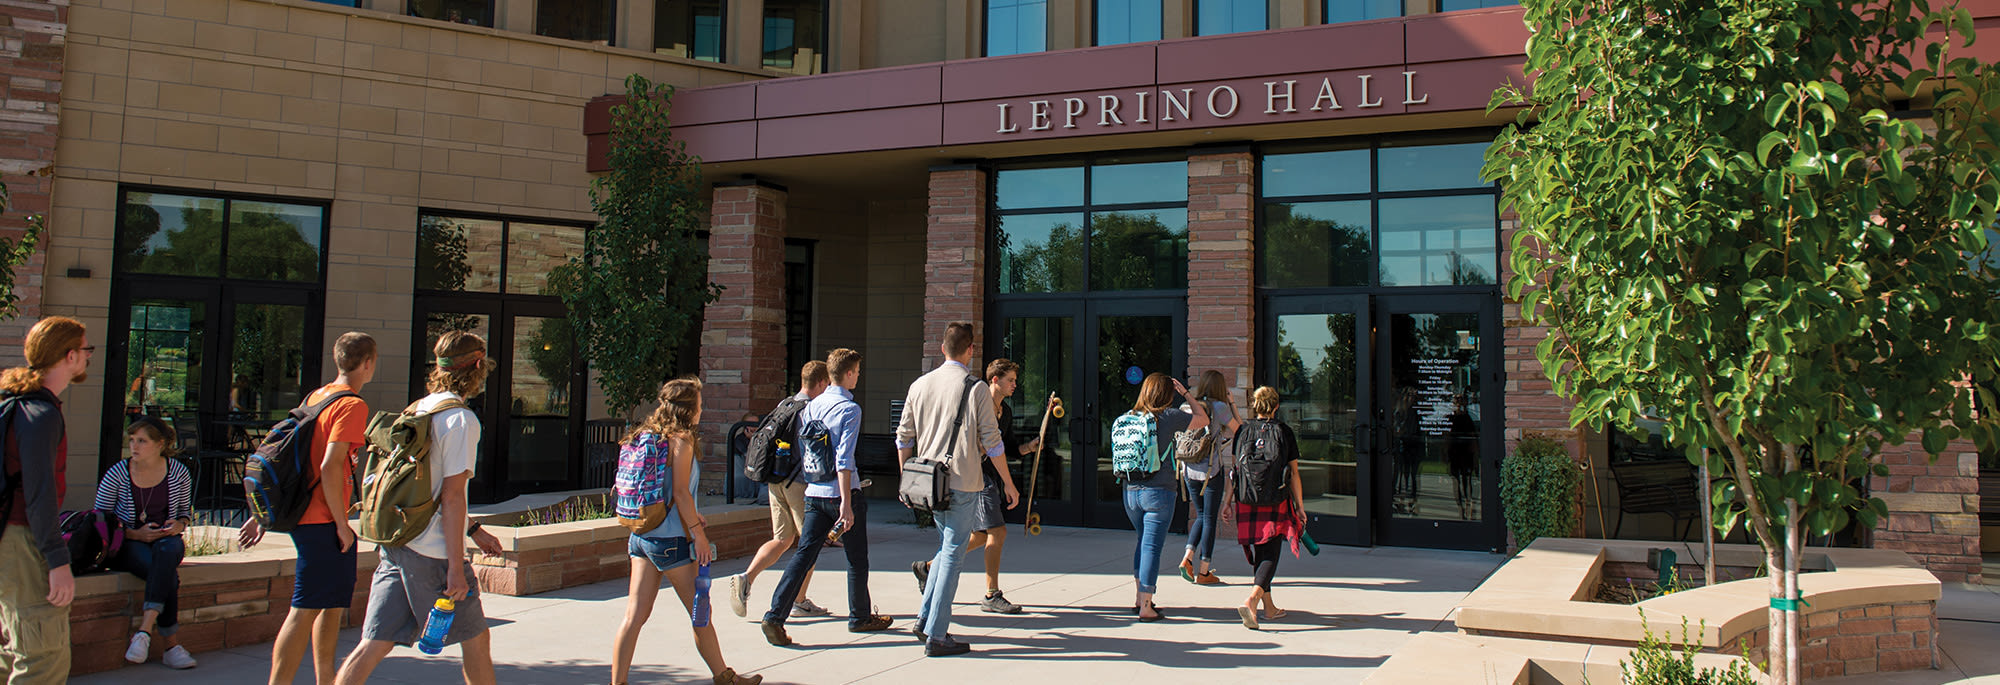 Students walking into Leprino Hall